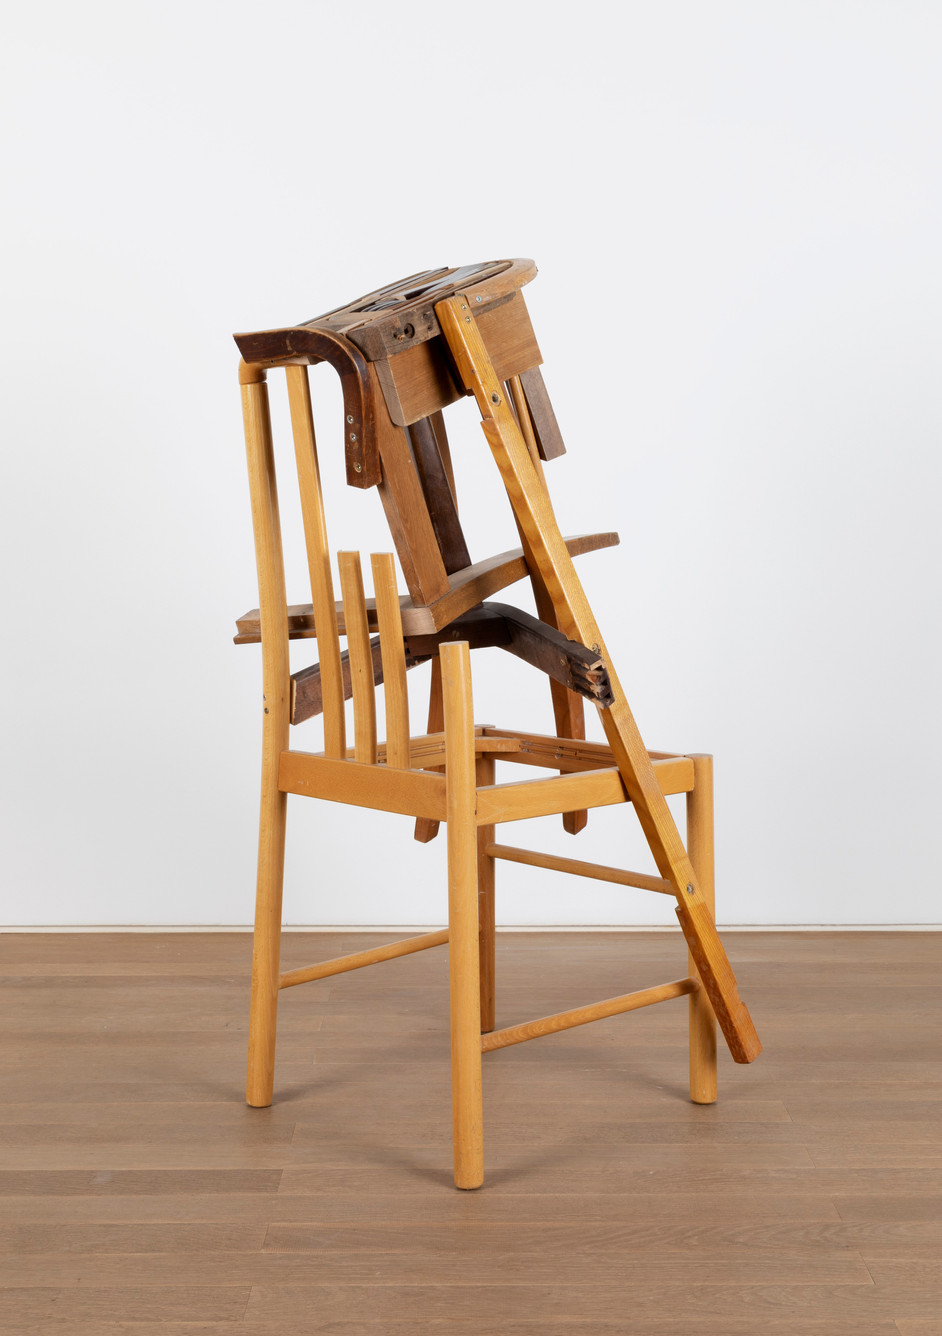 GELATIN Maria, 2011 wood, used furniture parts, metal  105 x 50 x 64 cm